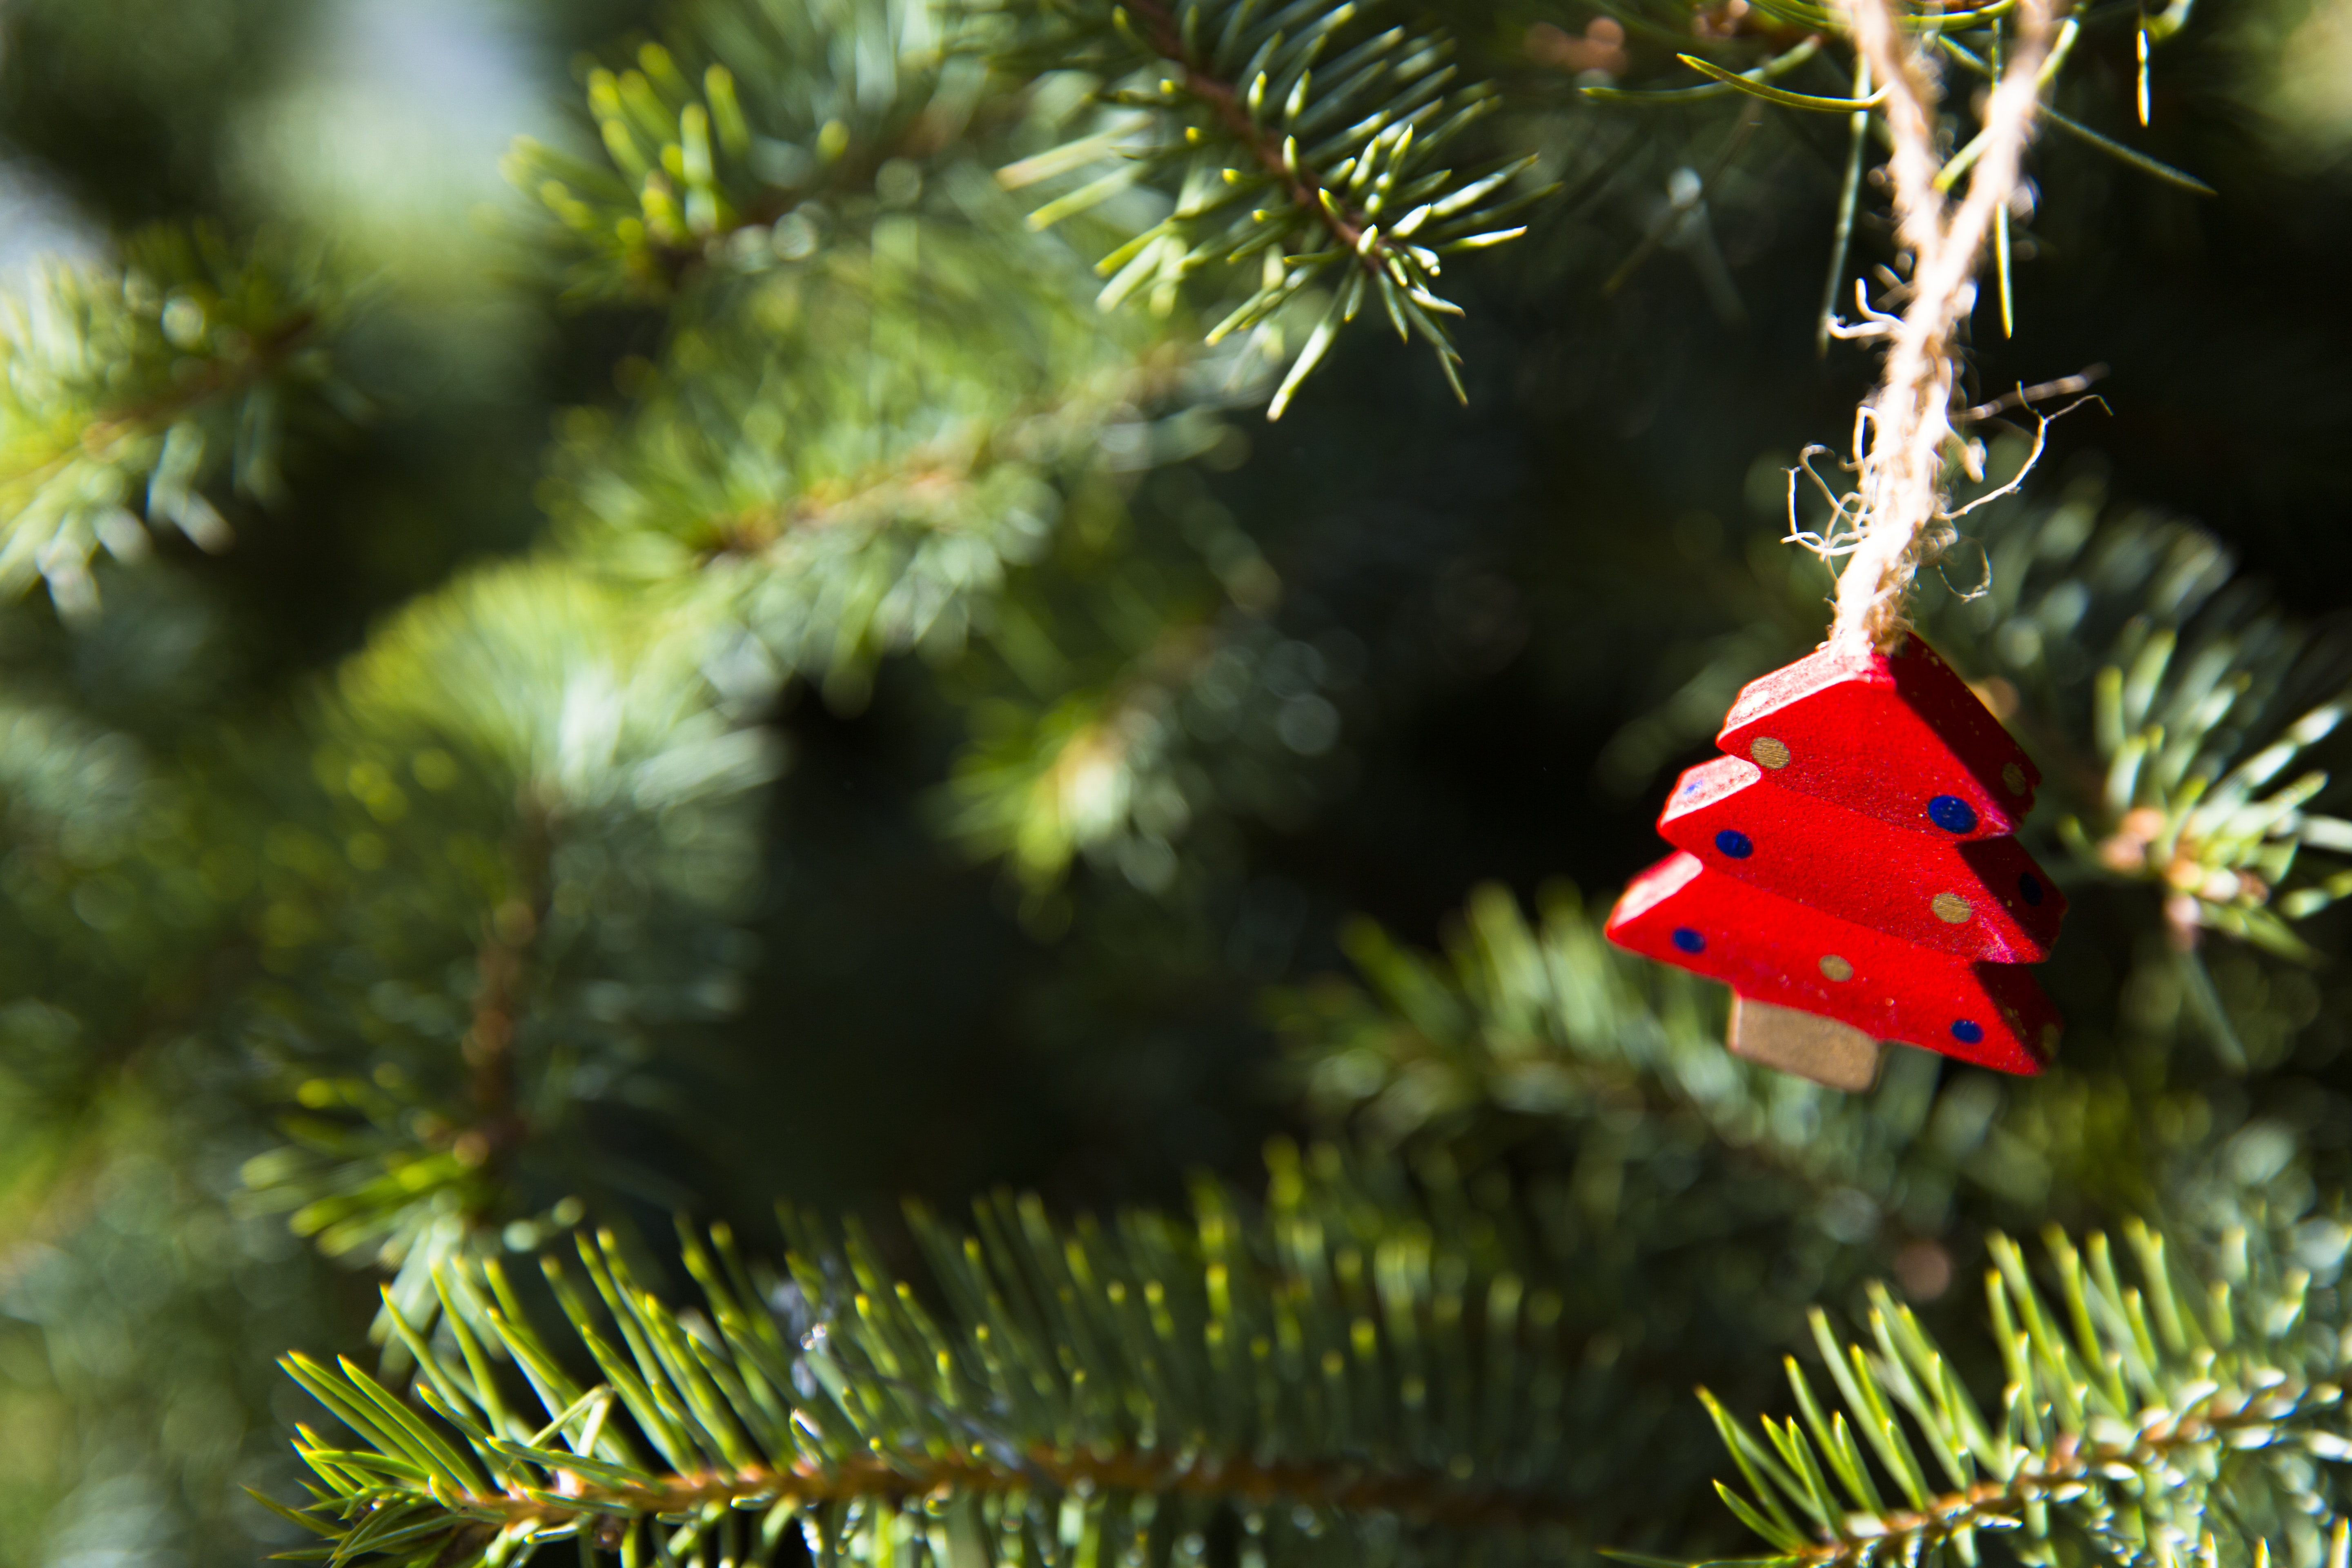 shallow focus photo of red holiday tree ornament